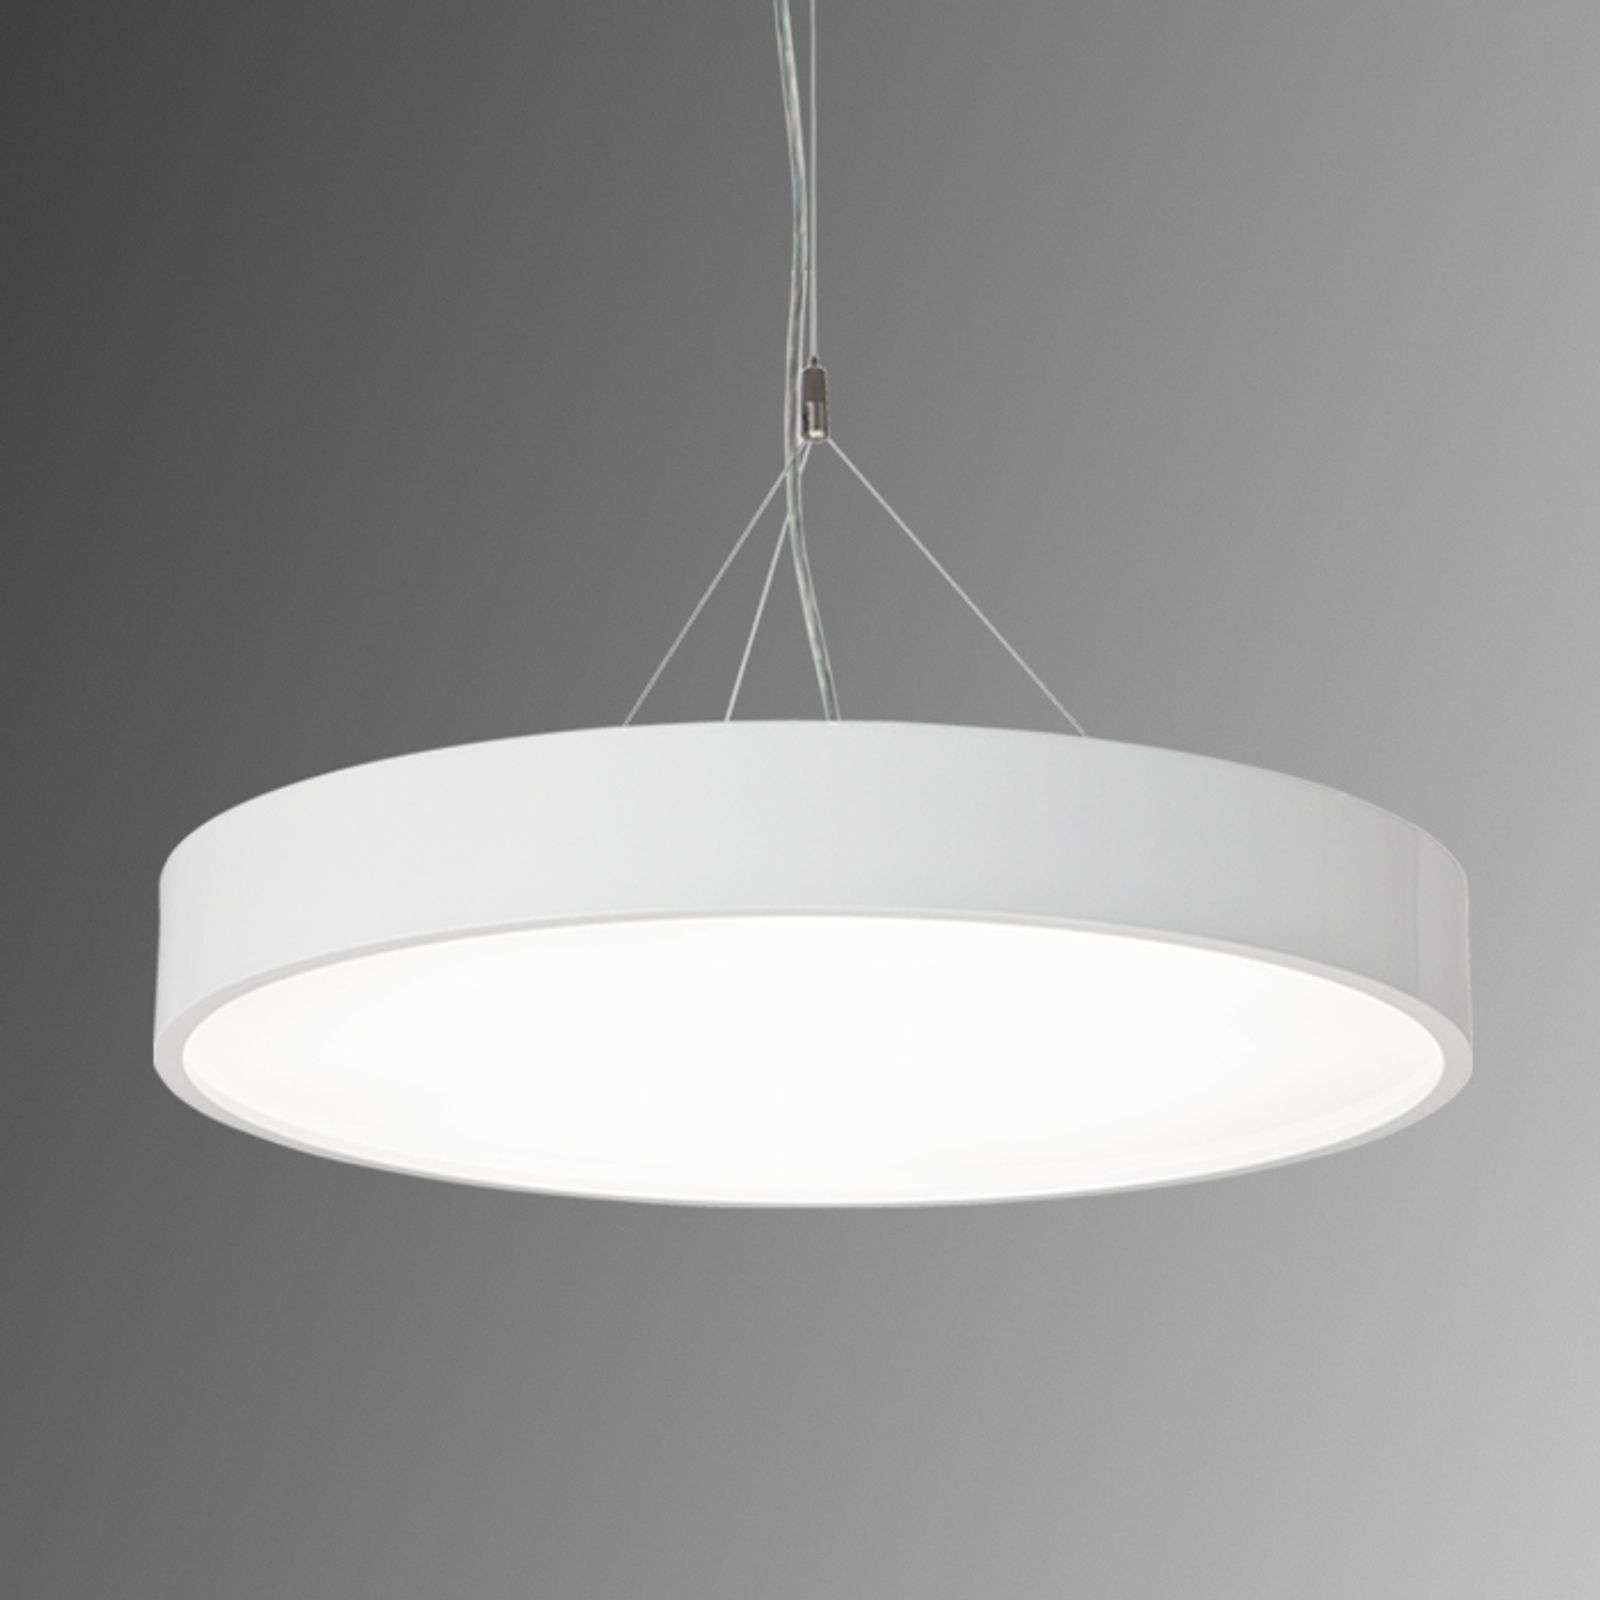 Suspension Modul P645 LED blanc